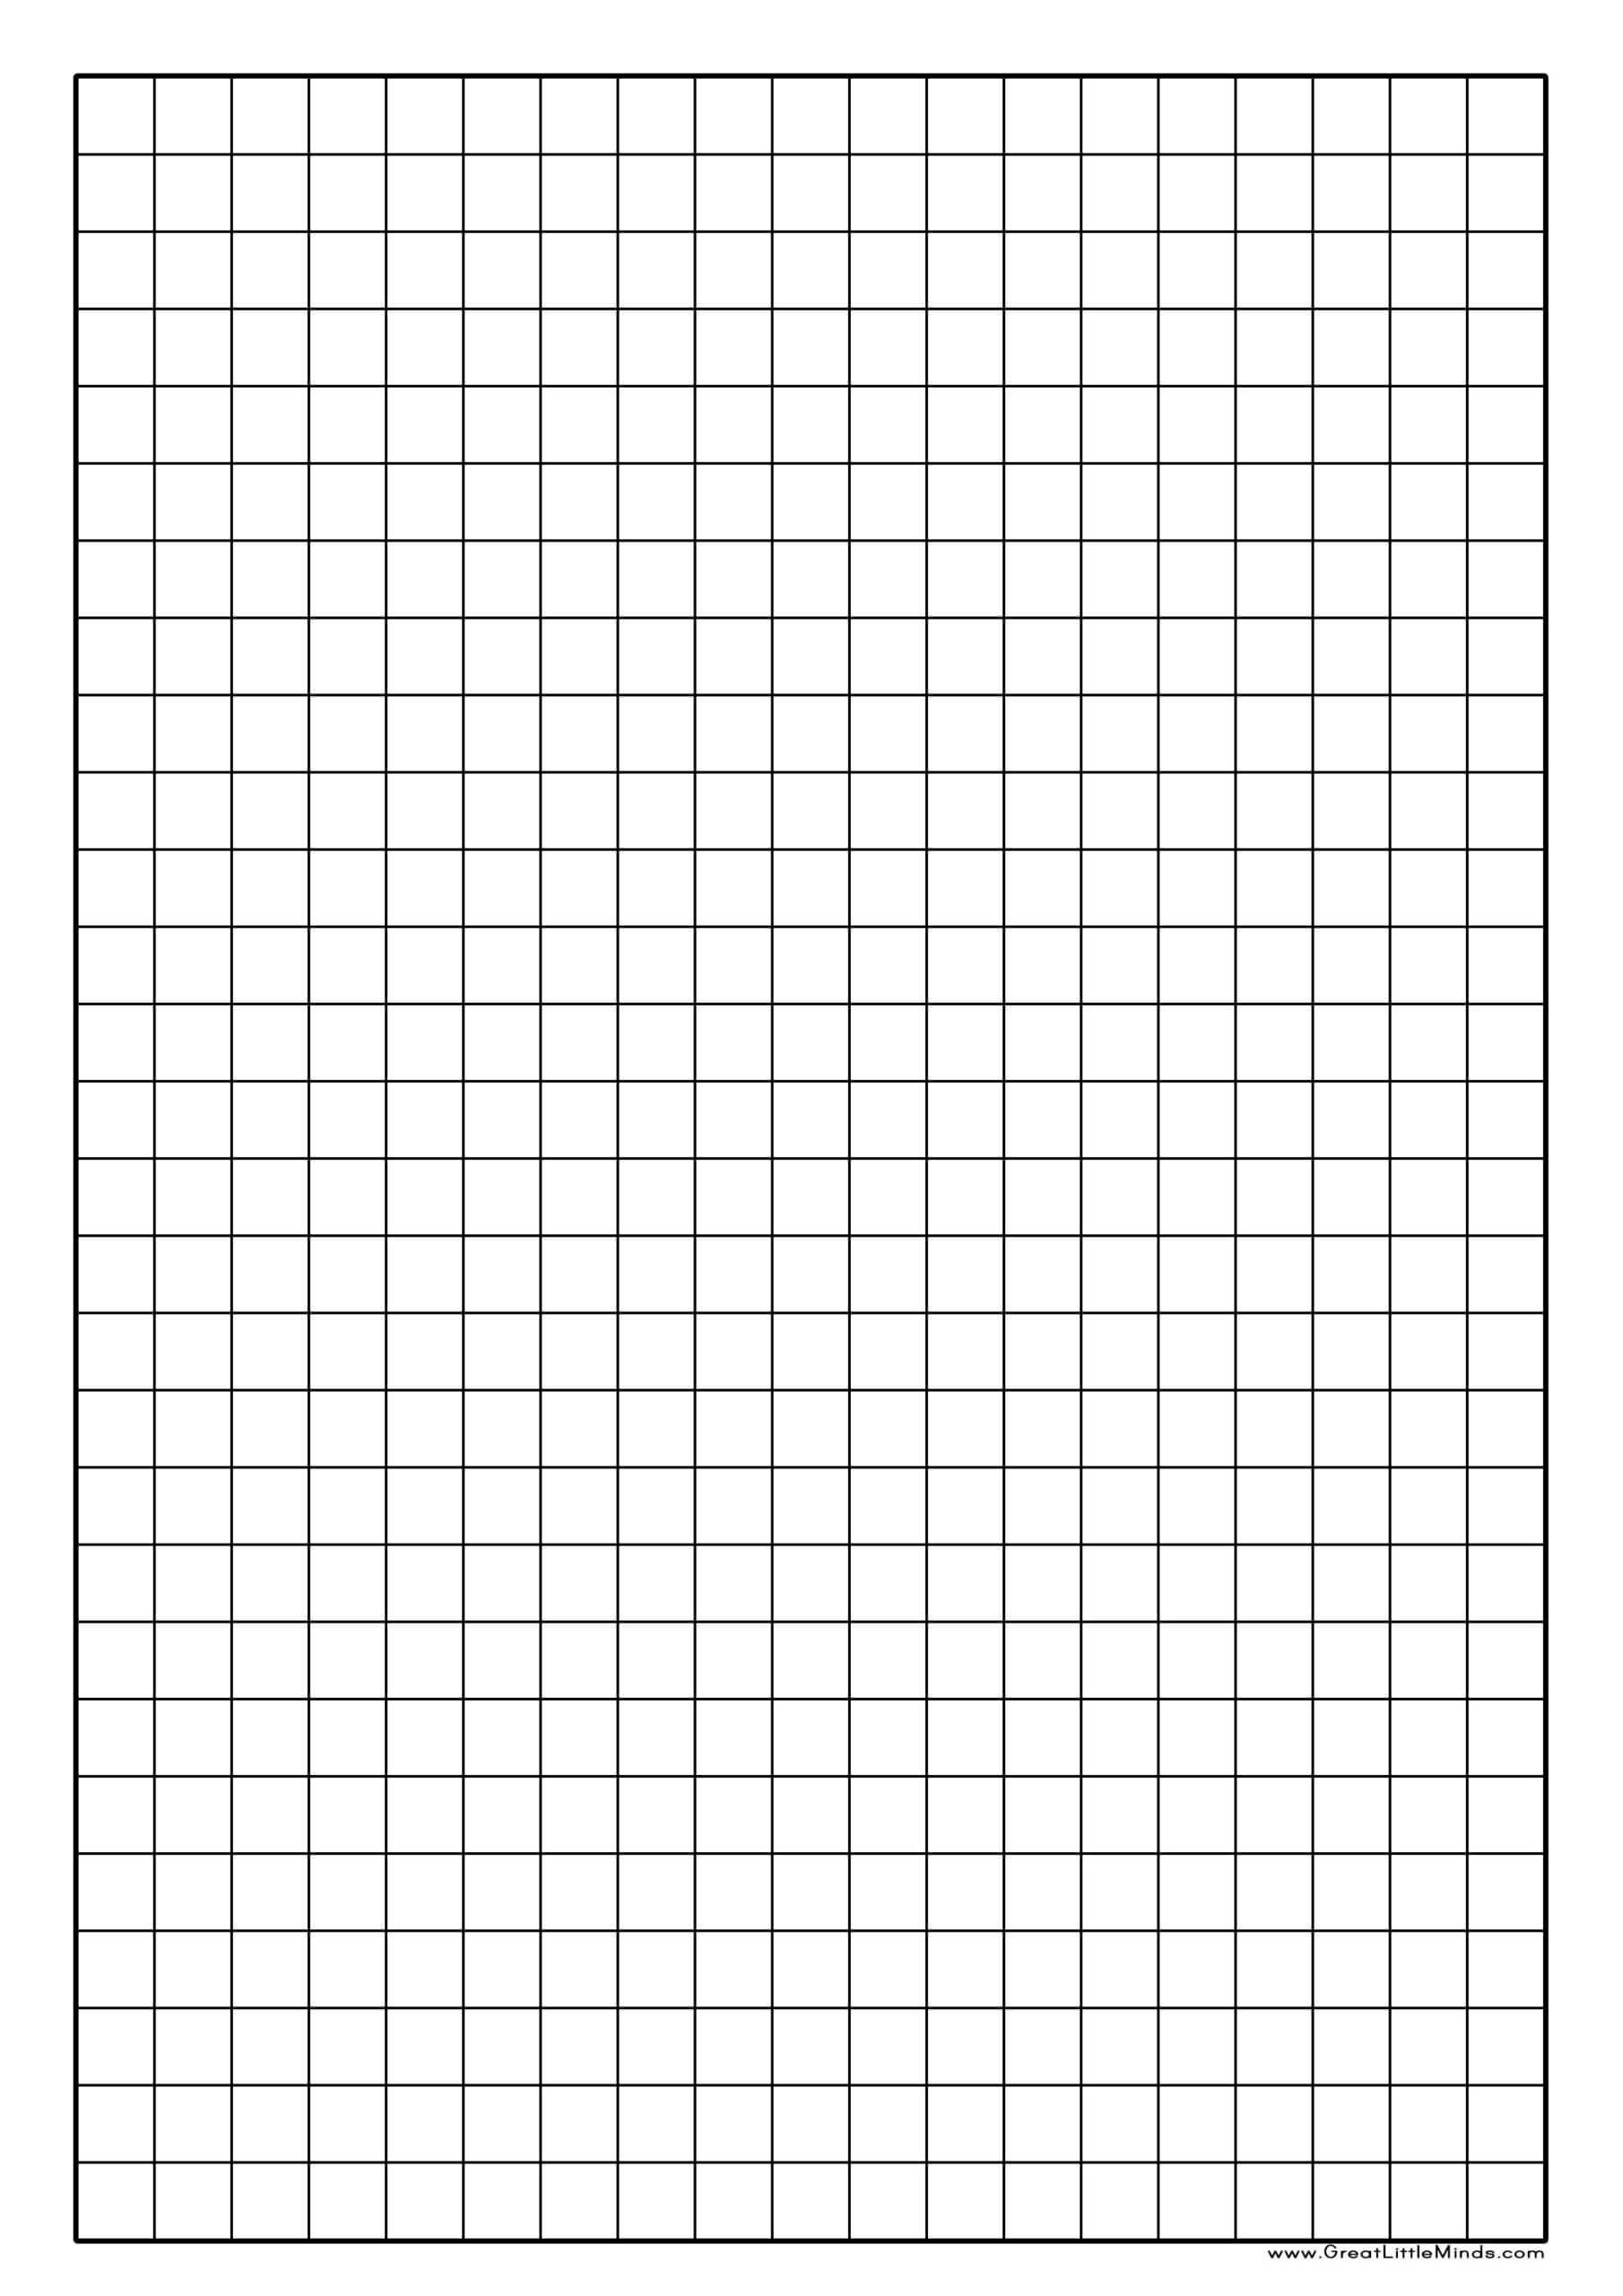 Print Graphing Paper - Zimer.bwong.co Regarding 1 Cm Graph Paper Template Word